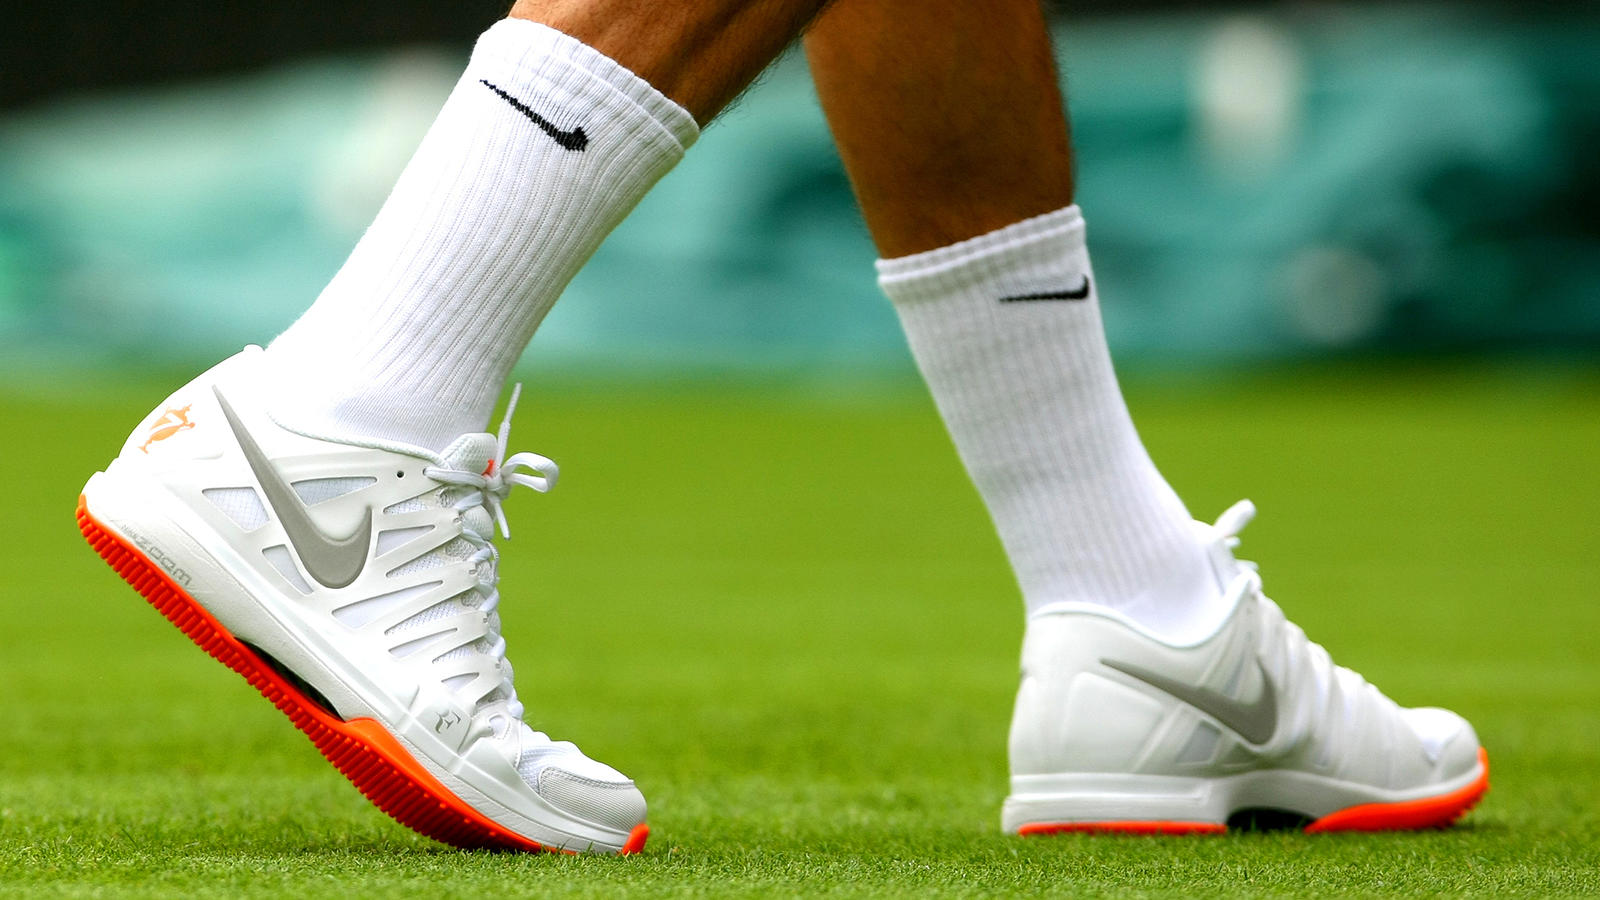 e367be4a74c0 ROGER FEDERER PUSHES BOUNDARIES IN NEW NIKE ZOOM VAPOR 9 TOUR LE. Nike Zoom  Vapor 9 Tour LE